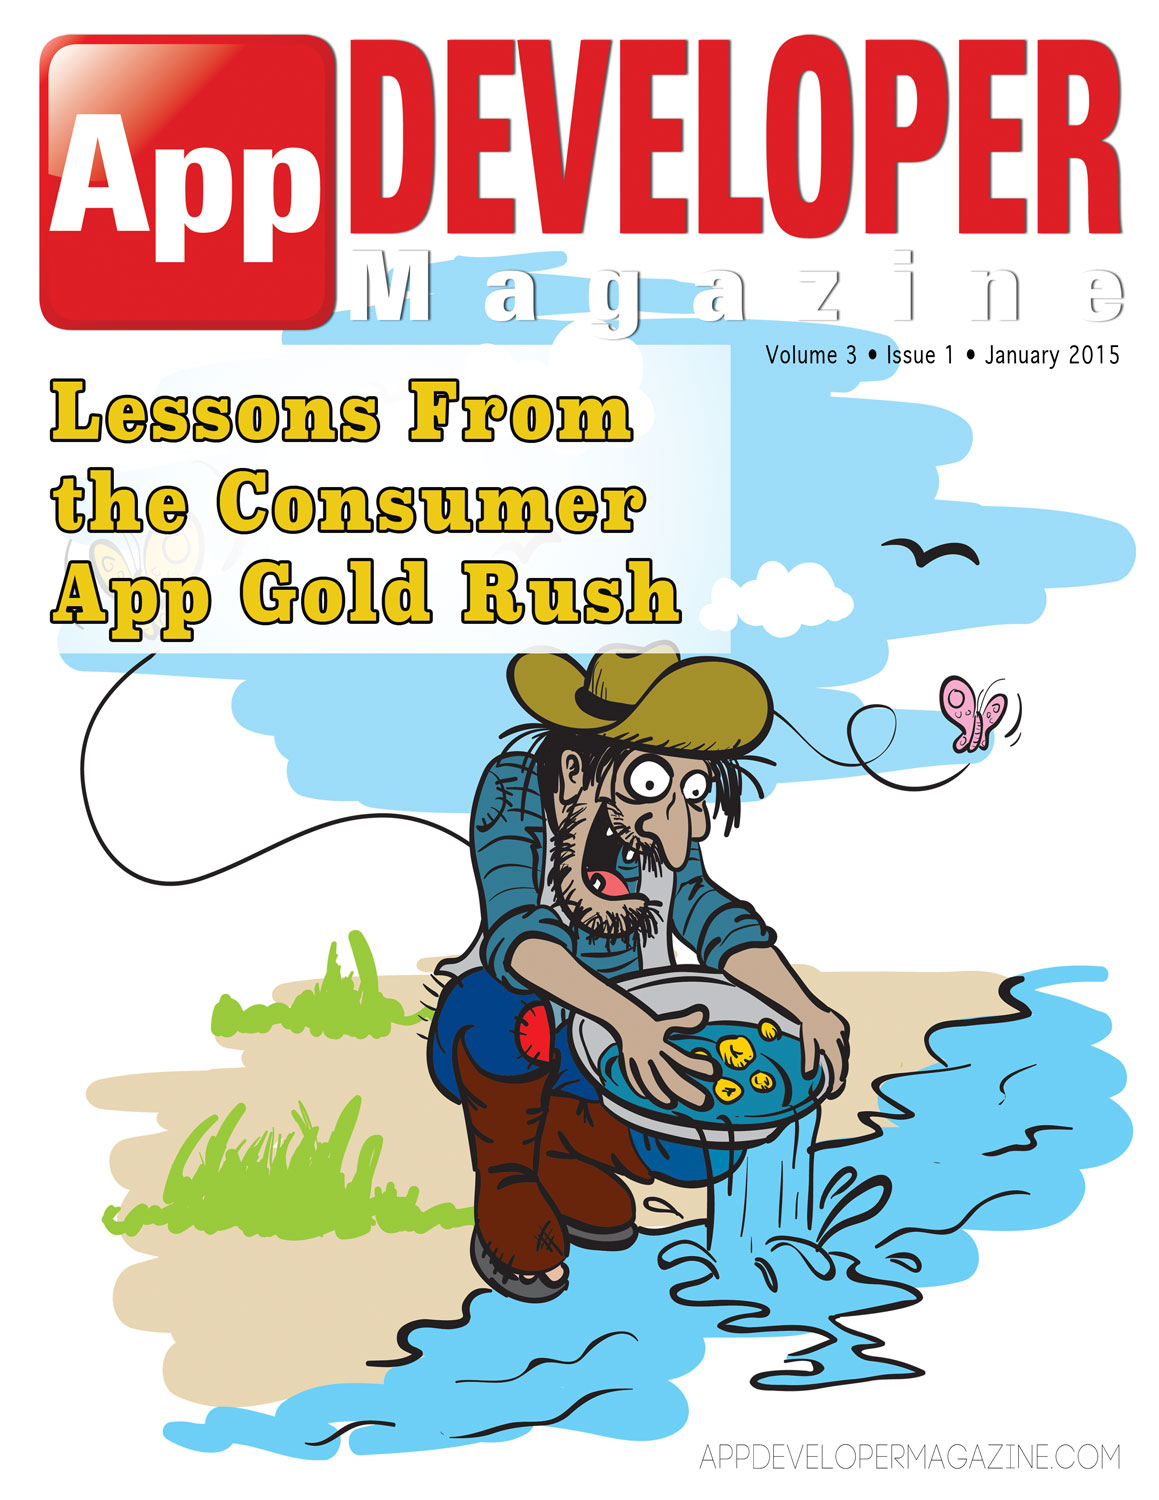 App Developer Magazine January 2015 Cover